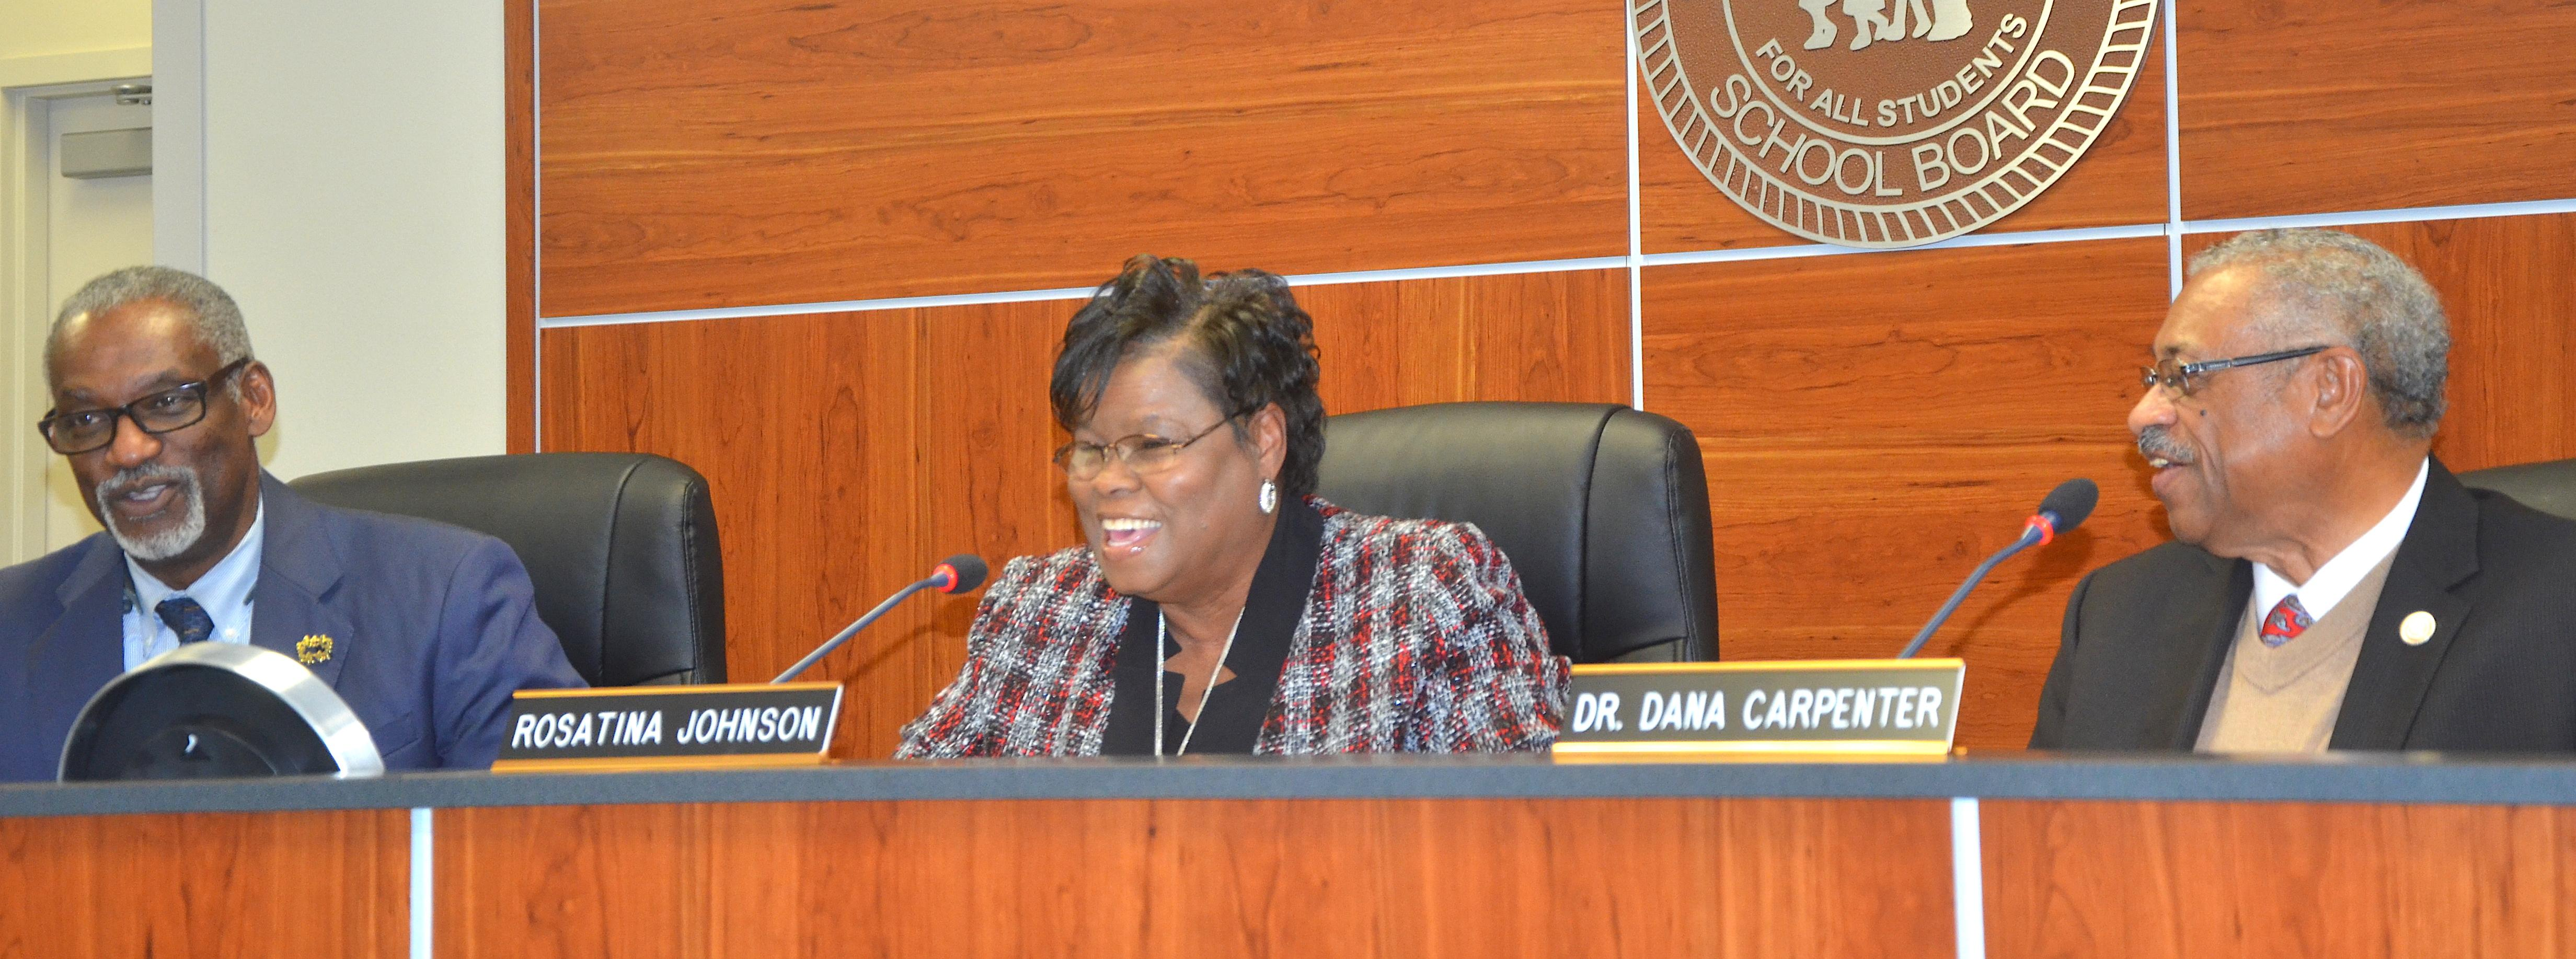 Photo of outgoing Baker school board President Rosatina  Johnson sharing a laugh with incoming Board President Dr. Dana Carpenter